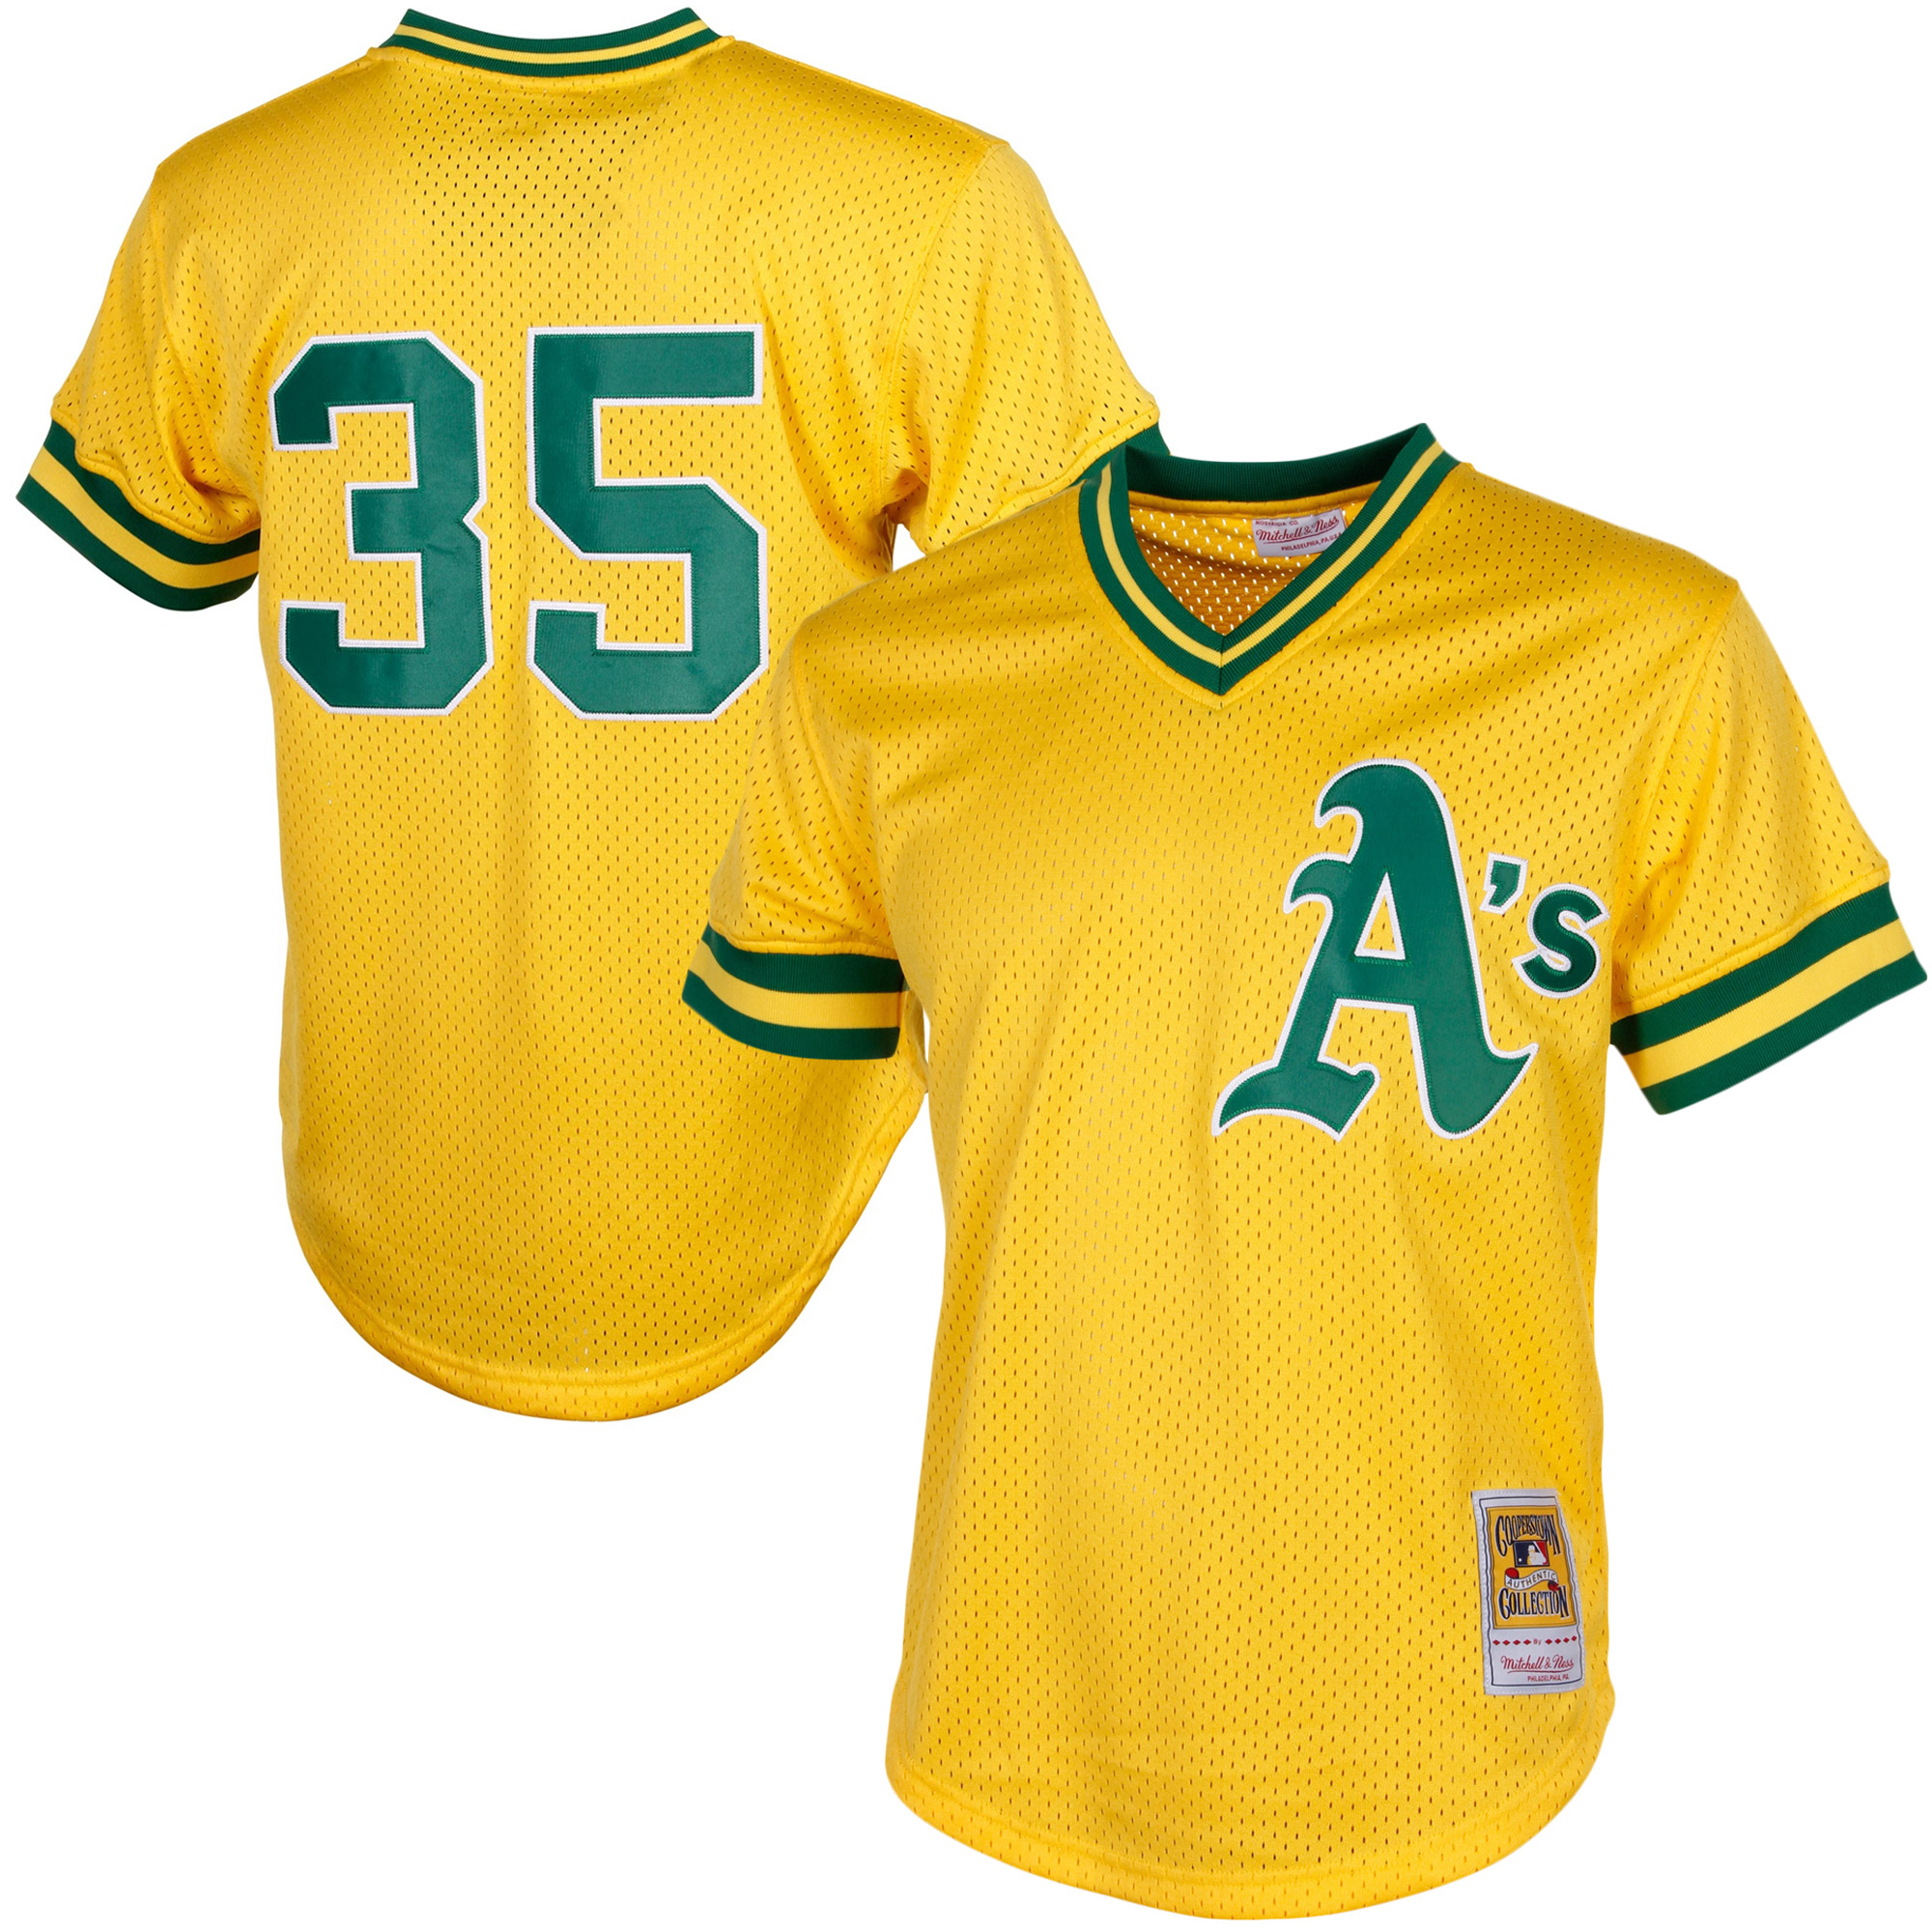 rickey henderson oakland athletics mitchell & ness cooperstown mesh batting practice jersey - yellow